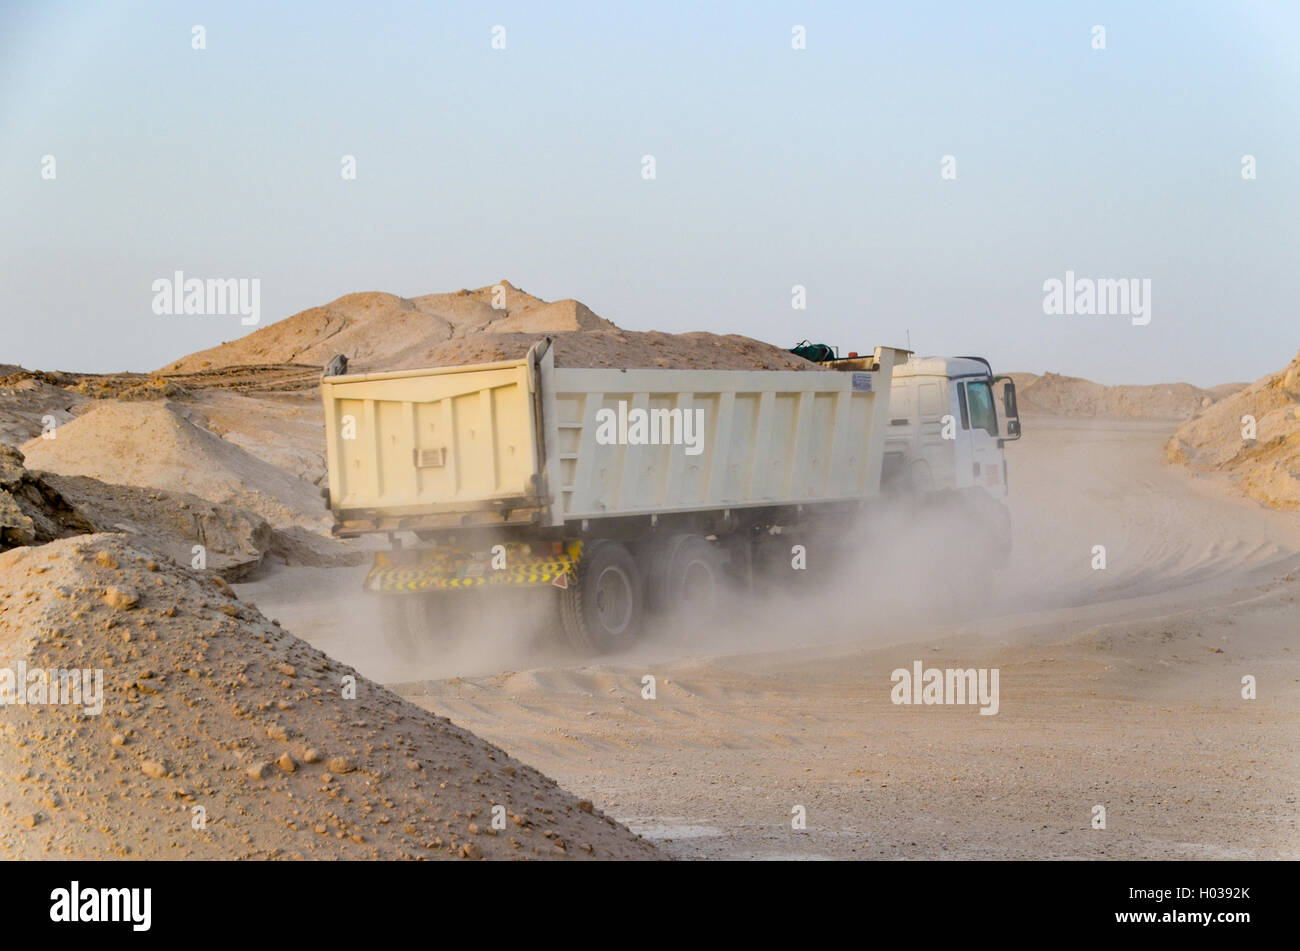 Truck passing into a sand quarry in the desert of Qatar - Stock Image